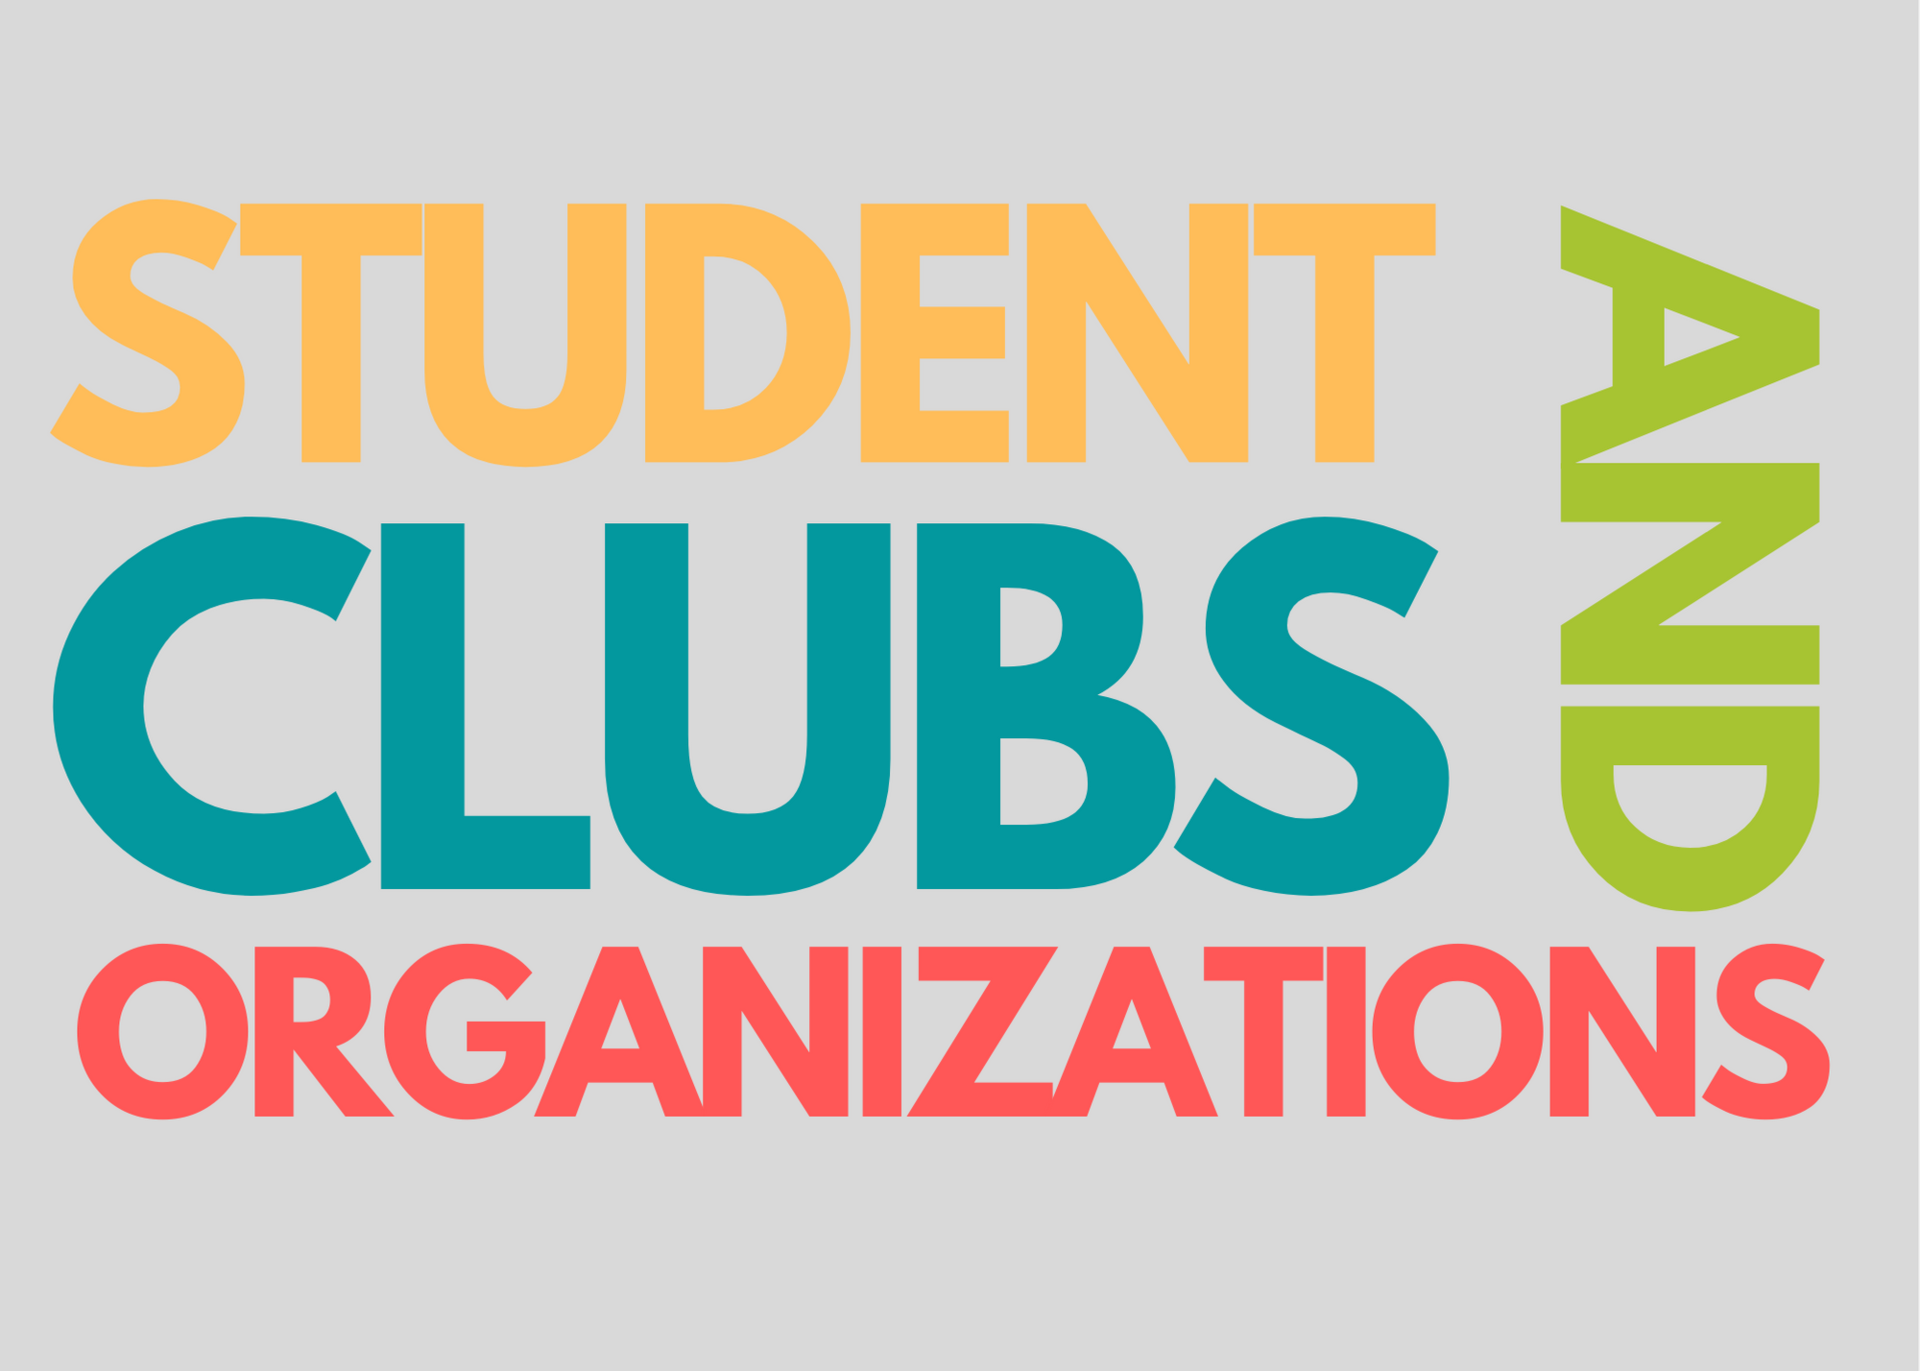 Activities / Clubs and Organizations